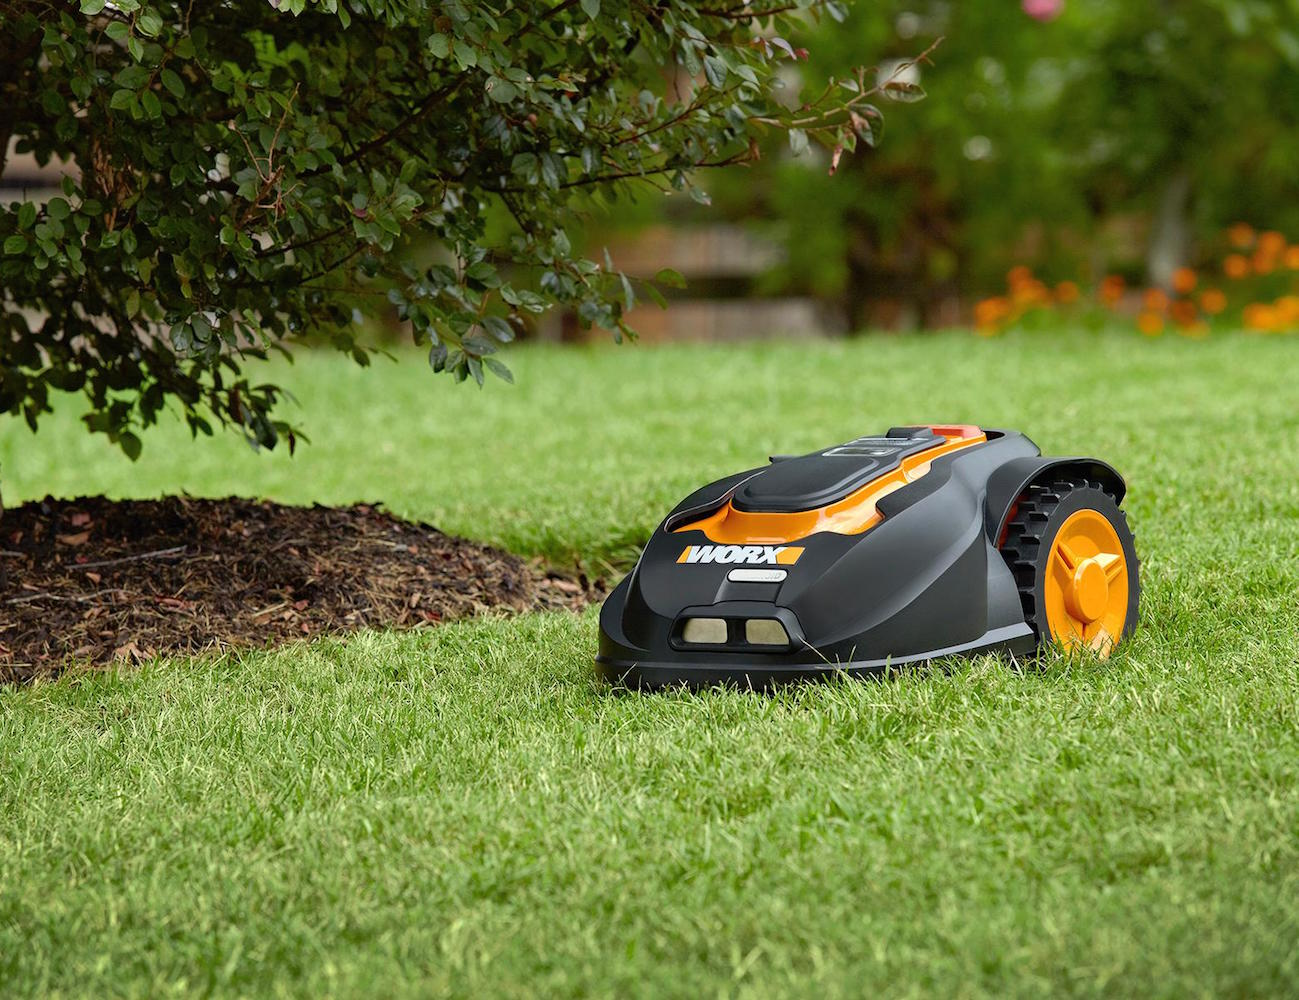 WORX Landroid - Robotic Lawn Mower » Review